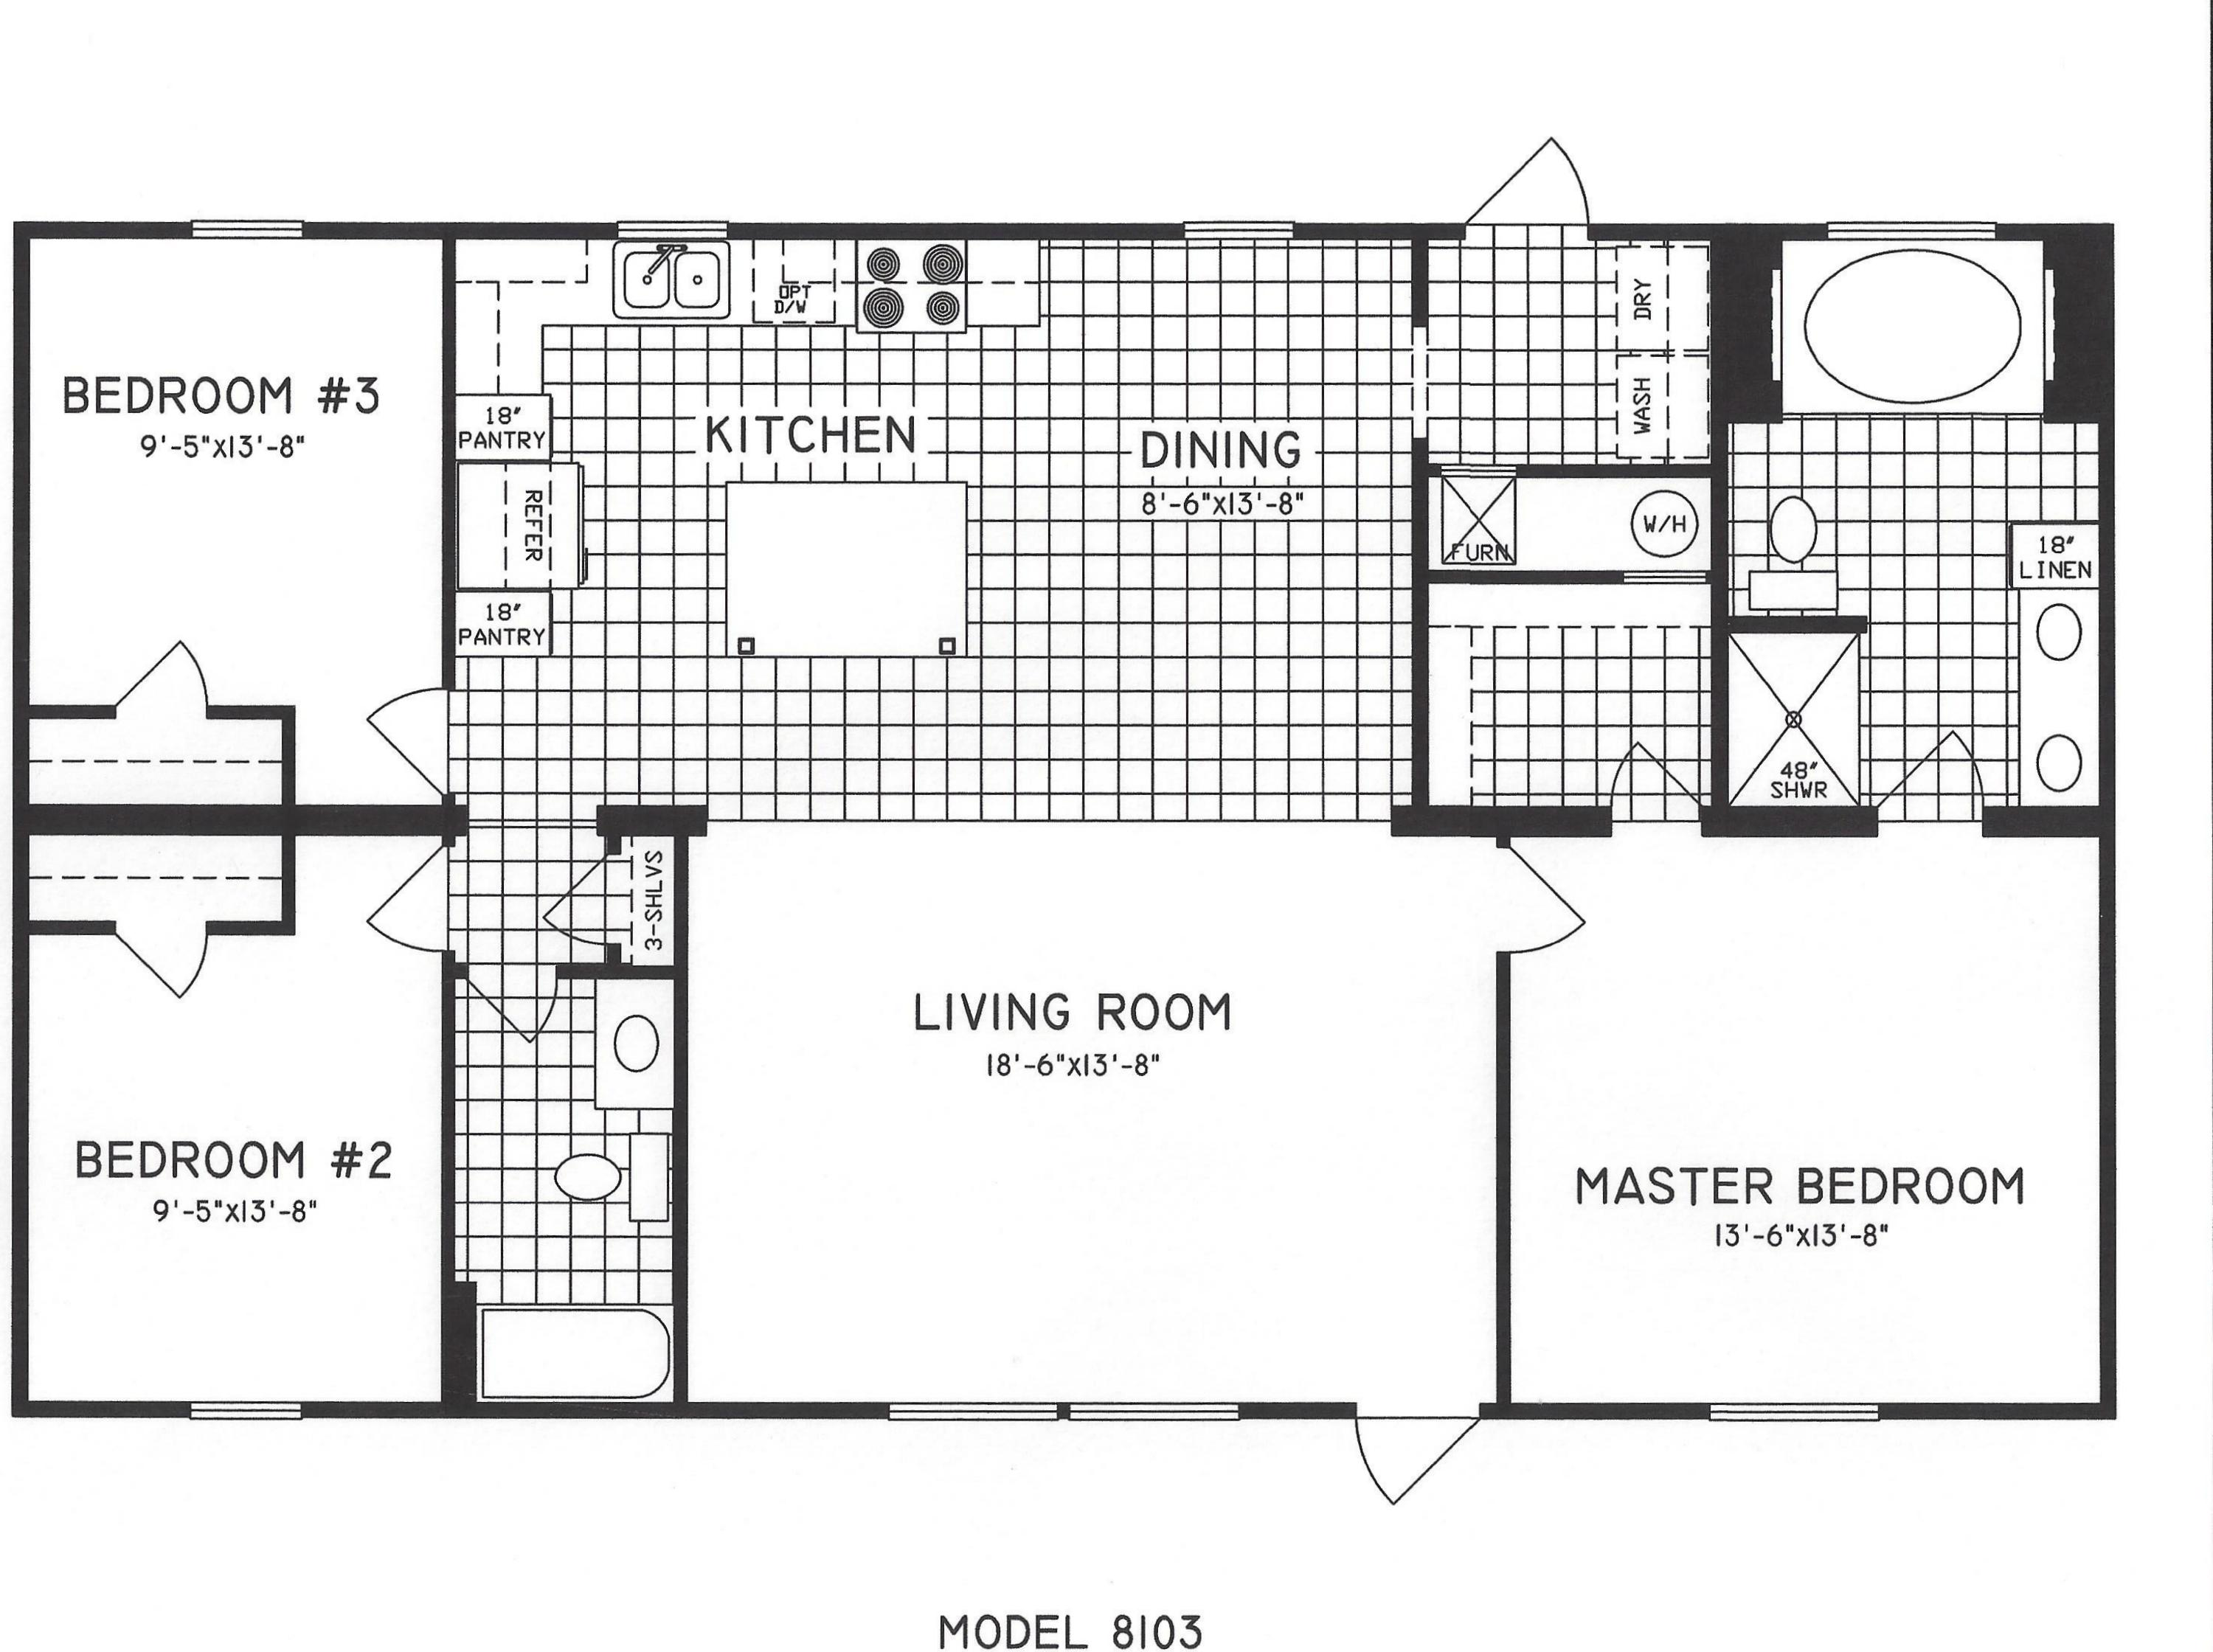 3 bedroom floor plan c 8103 hawks homes manufactured for 3 bed 2 bath ranch floor plans